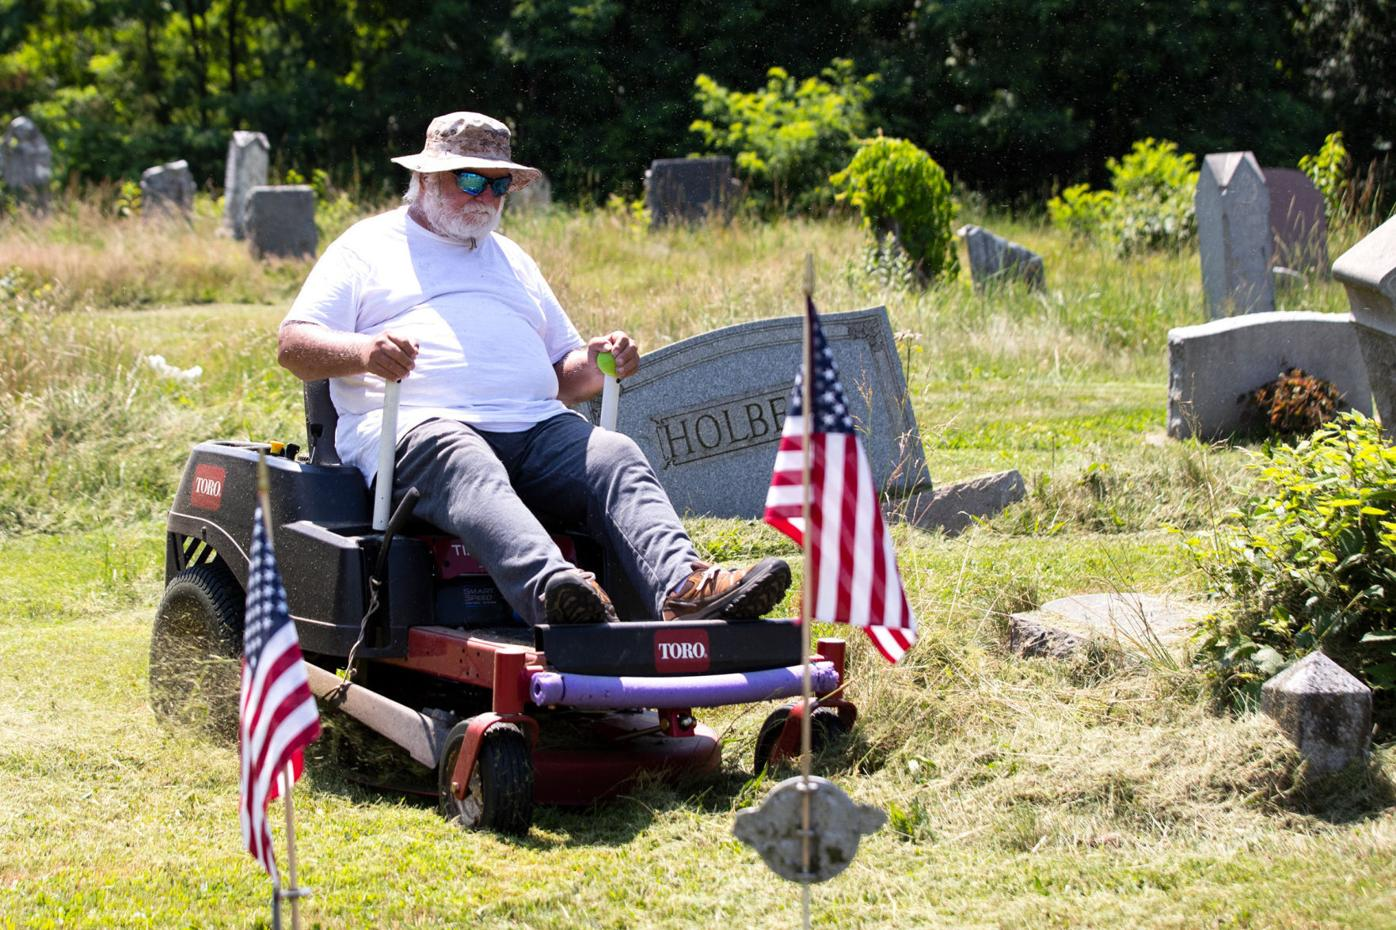 Chris Kelly Opinion: Cemeteries need more bodies